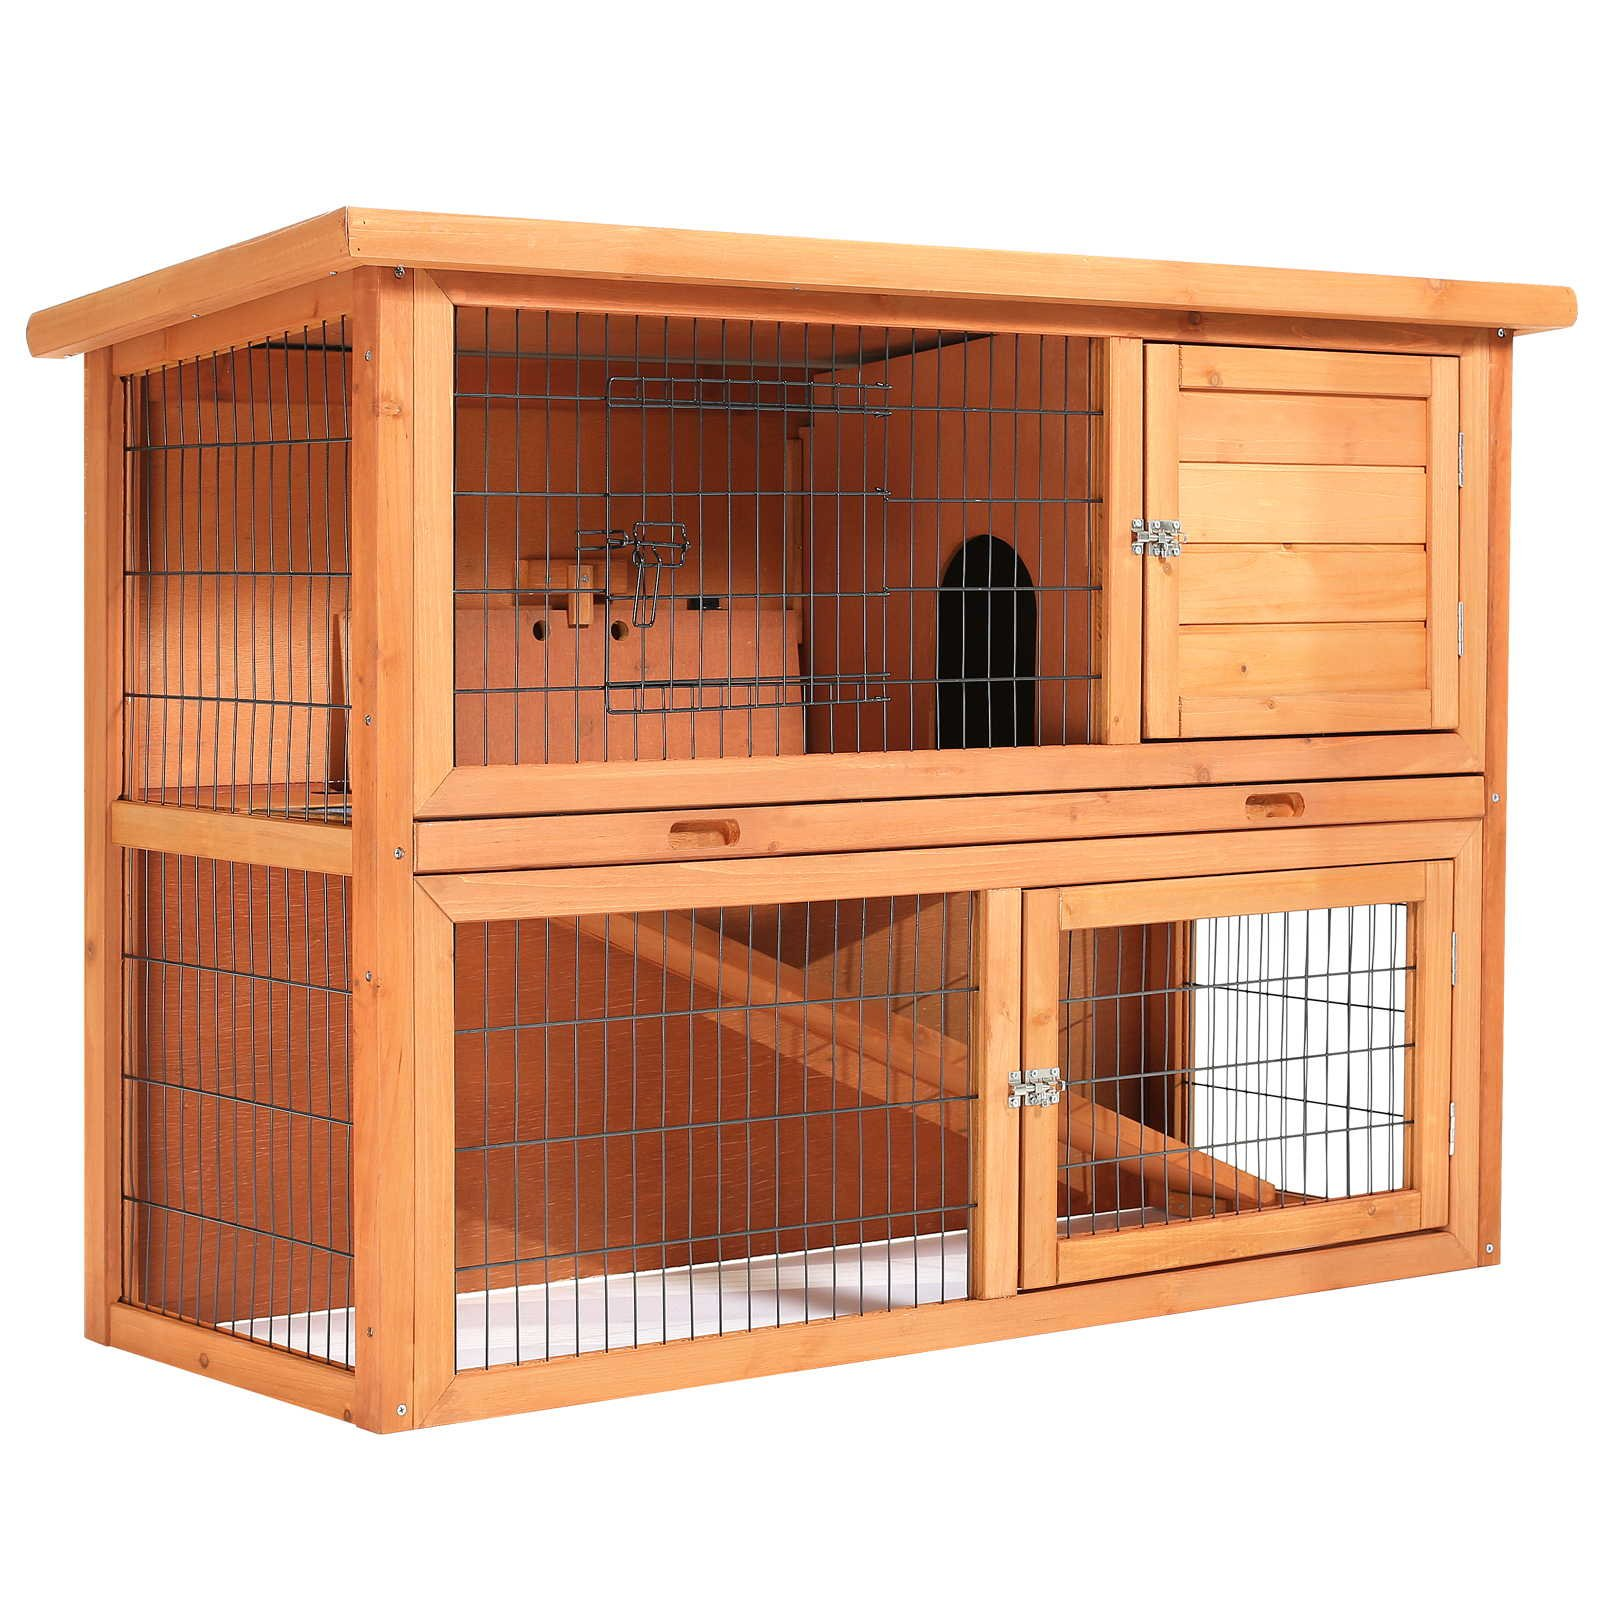 SmithBuilt 48'' Rabbit Hutch - Two Story Wood Bunny Cage by SmithBuilt Crates